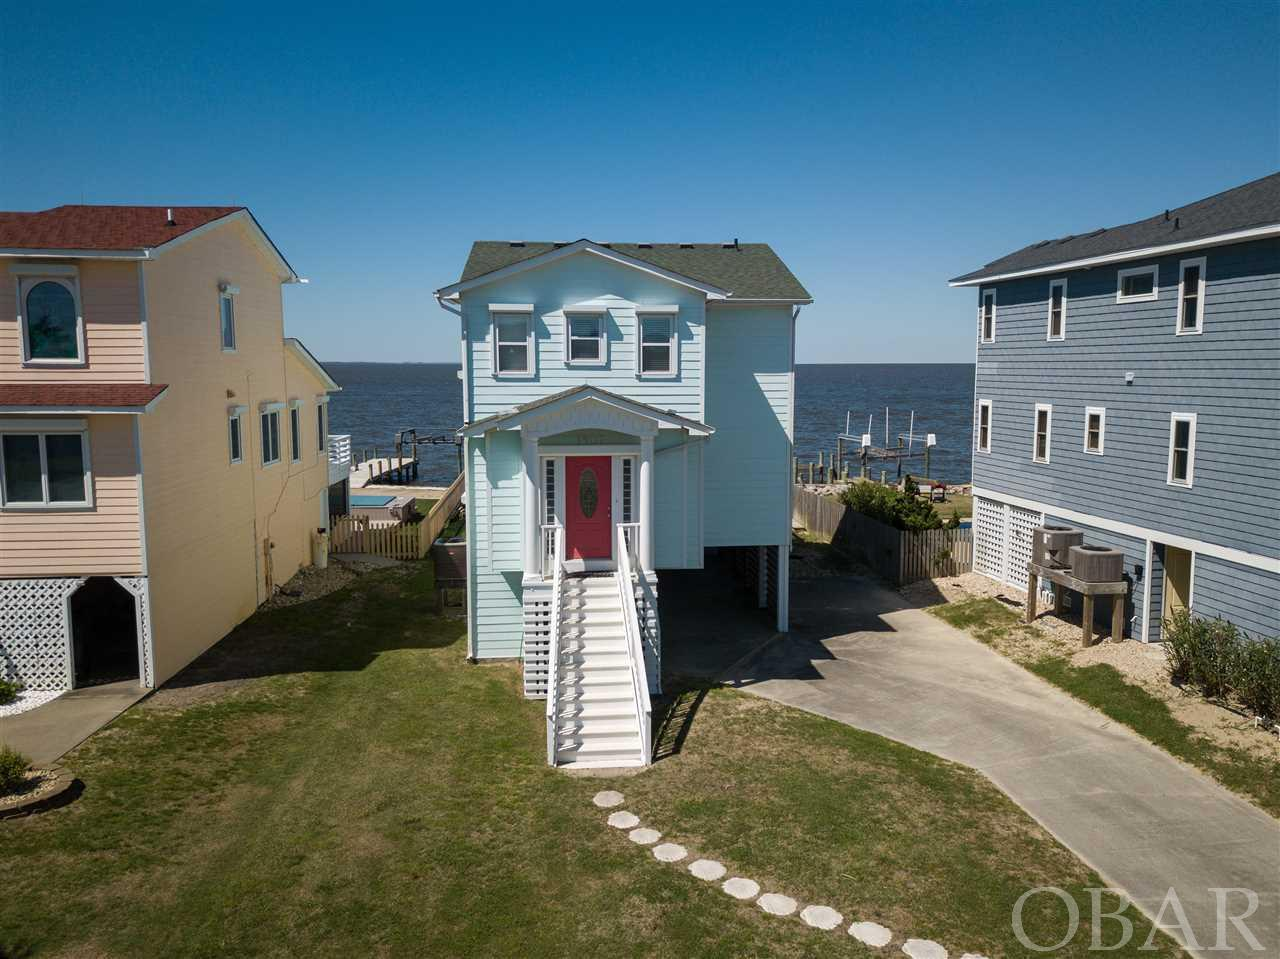 1907 Harbour View Drive, Kill Devil Hills, NC 27948, 3 Bedrooms Bedrooms, ,2 BathroomsBathrooms,Residential,For sale,Harbour View Drive,104800